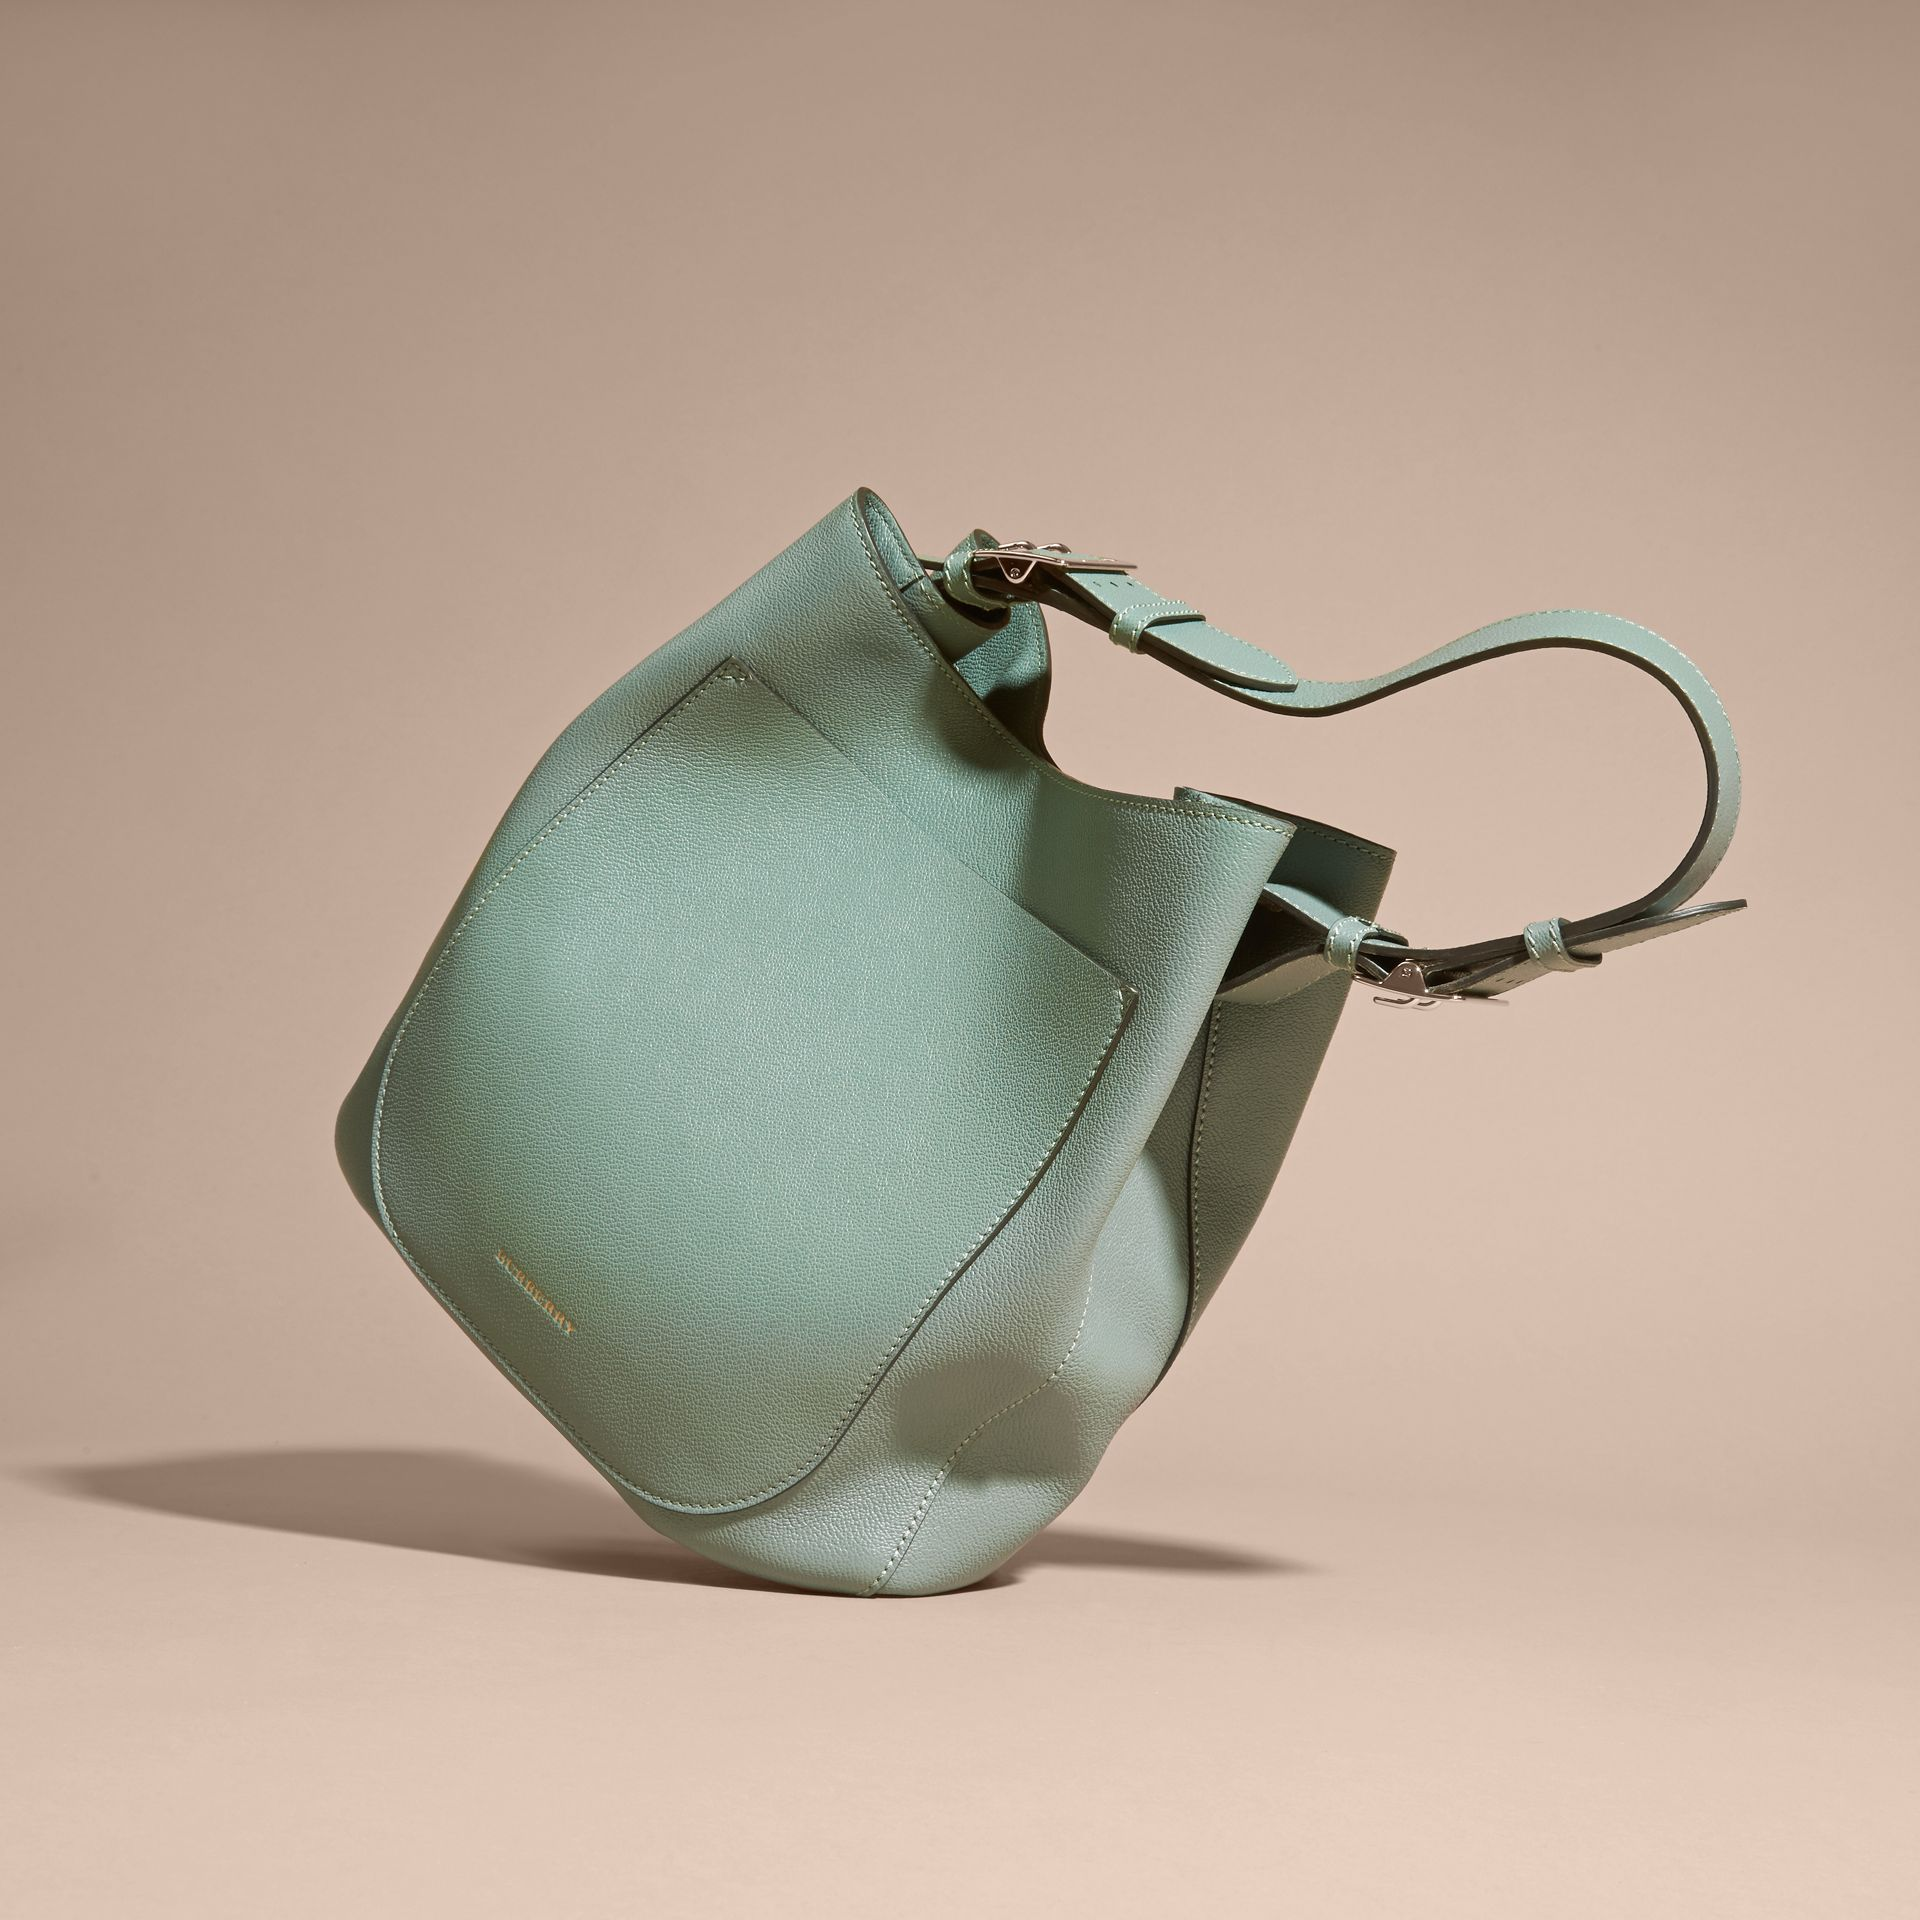 Eucalyptus green Textured Leather Shoulder Bag Eucalyptus Green - gallery image 7